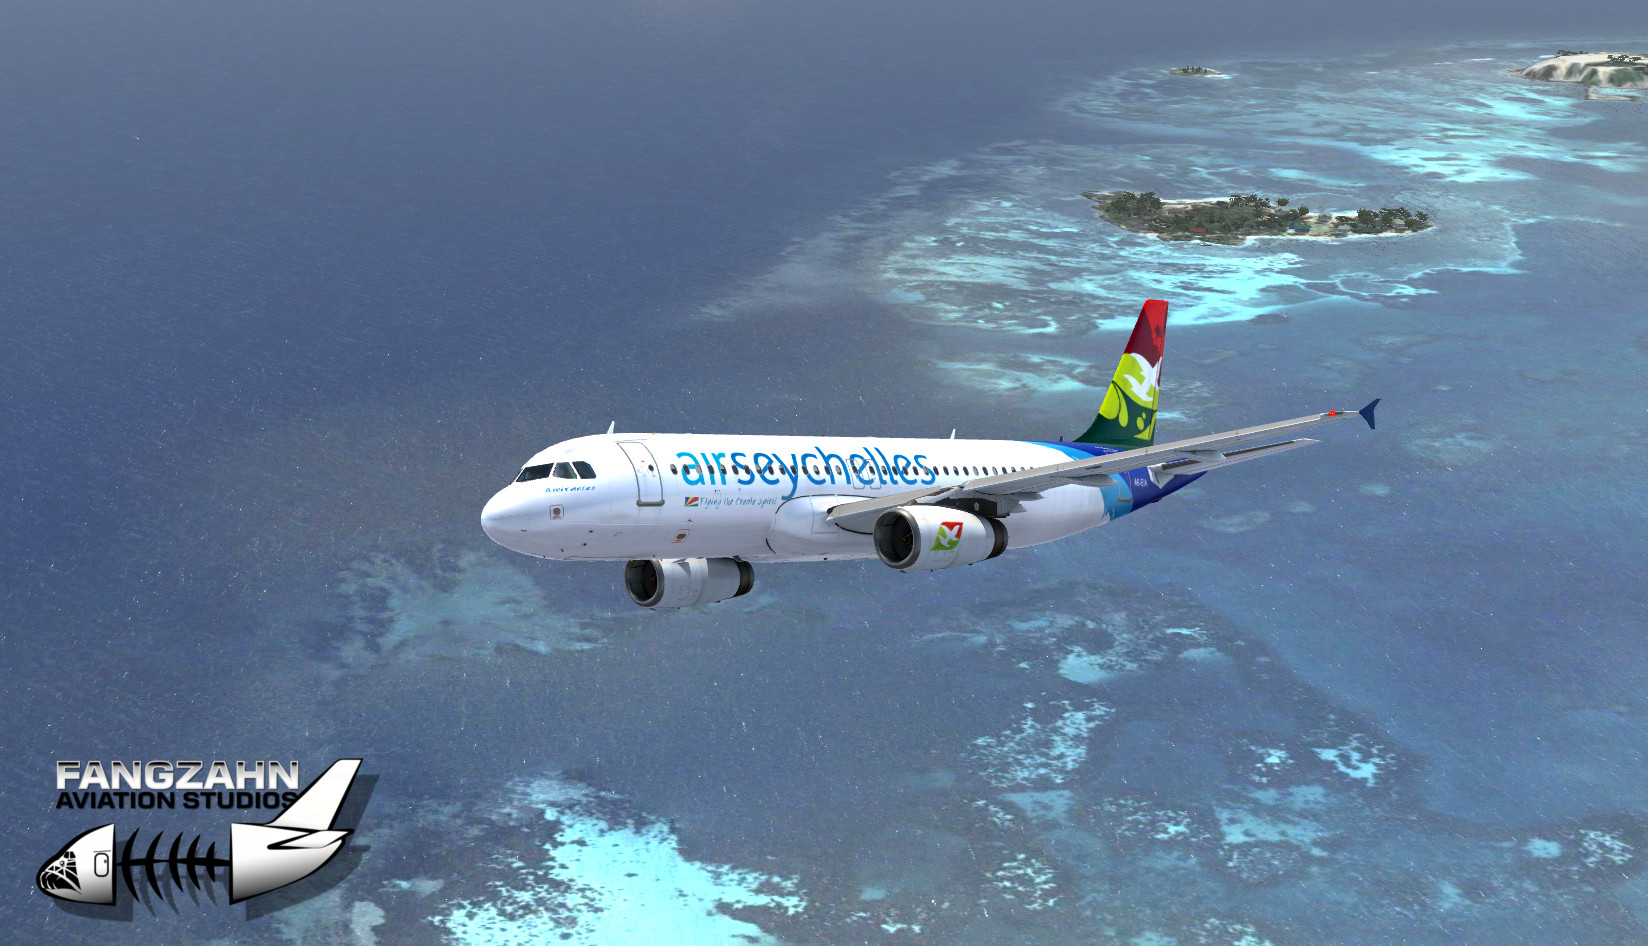 Air Seychelles livery request - Airbus General - AEROSOFT